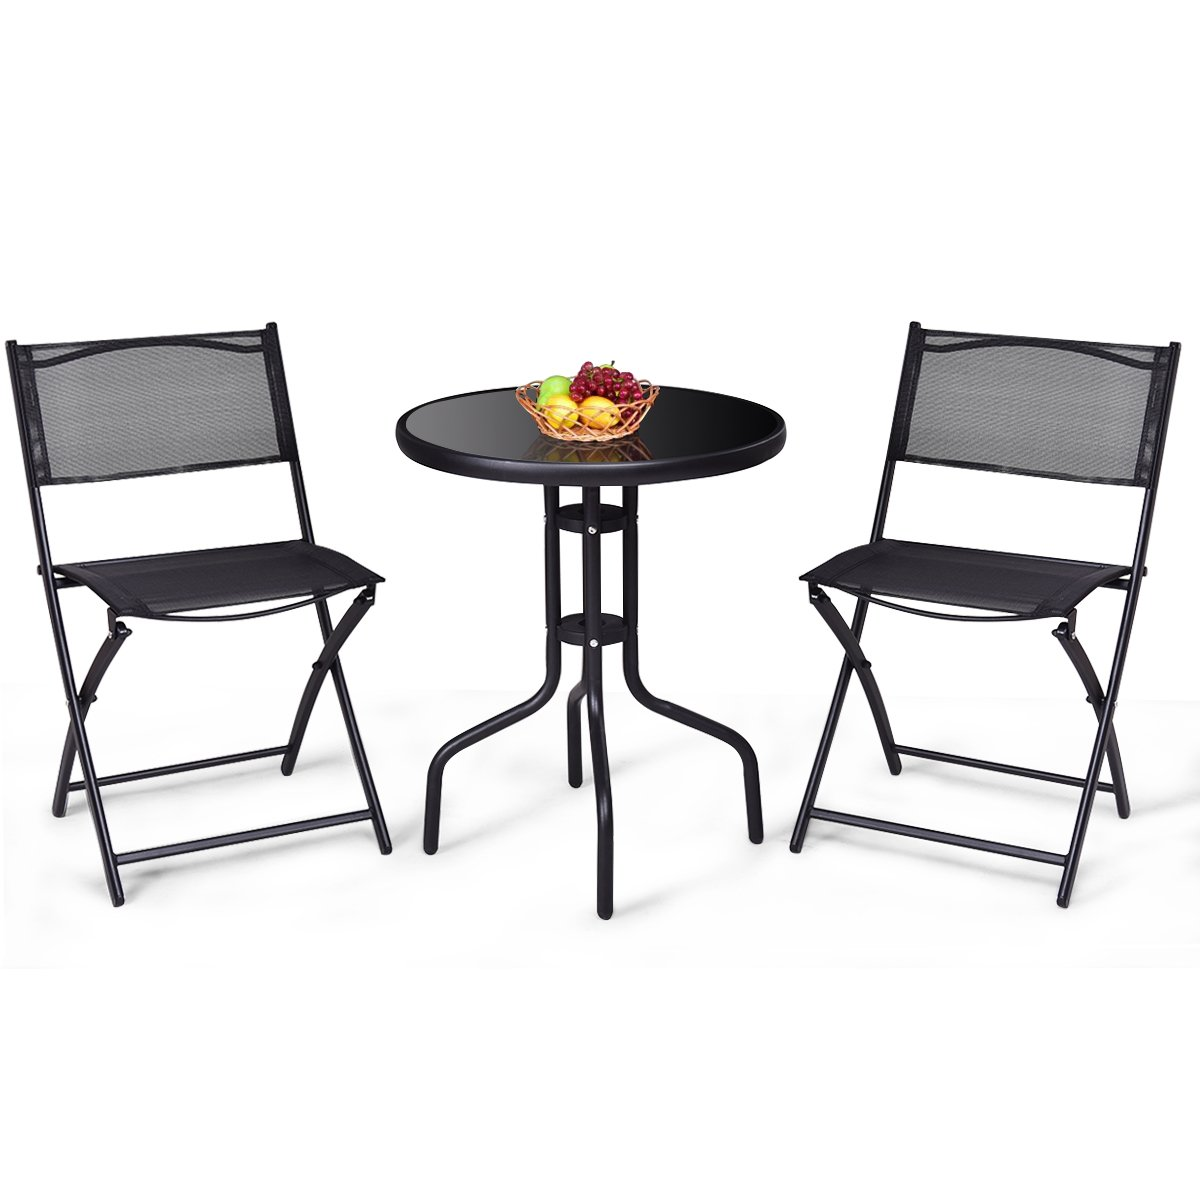 Giantex 3 Pcs Bistro Set Garden Backyard Table Folding Chairs Outdoor Patio Furniture, Black